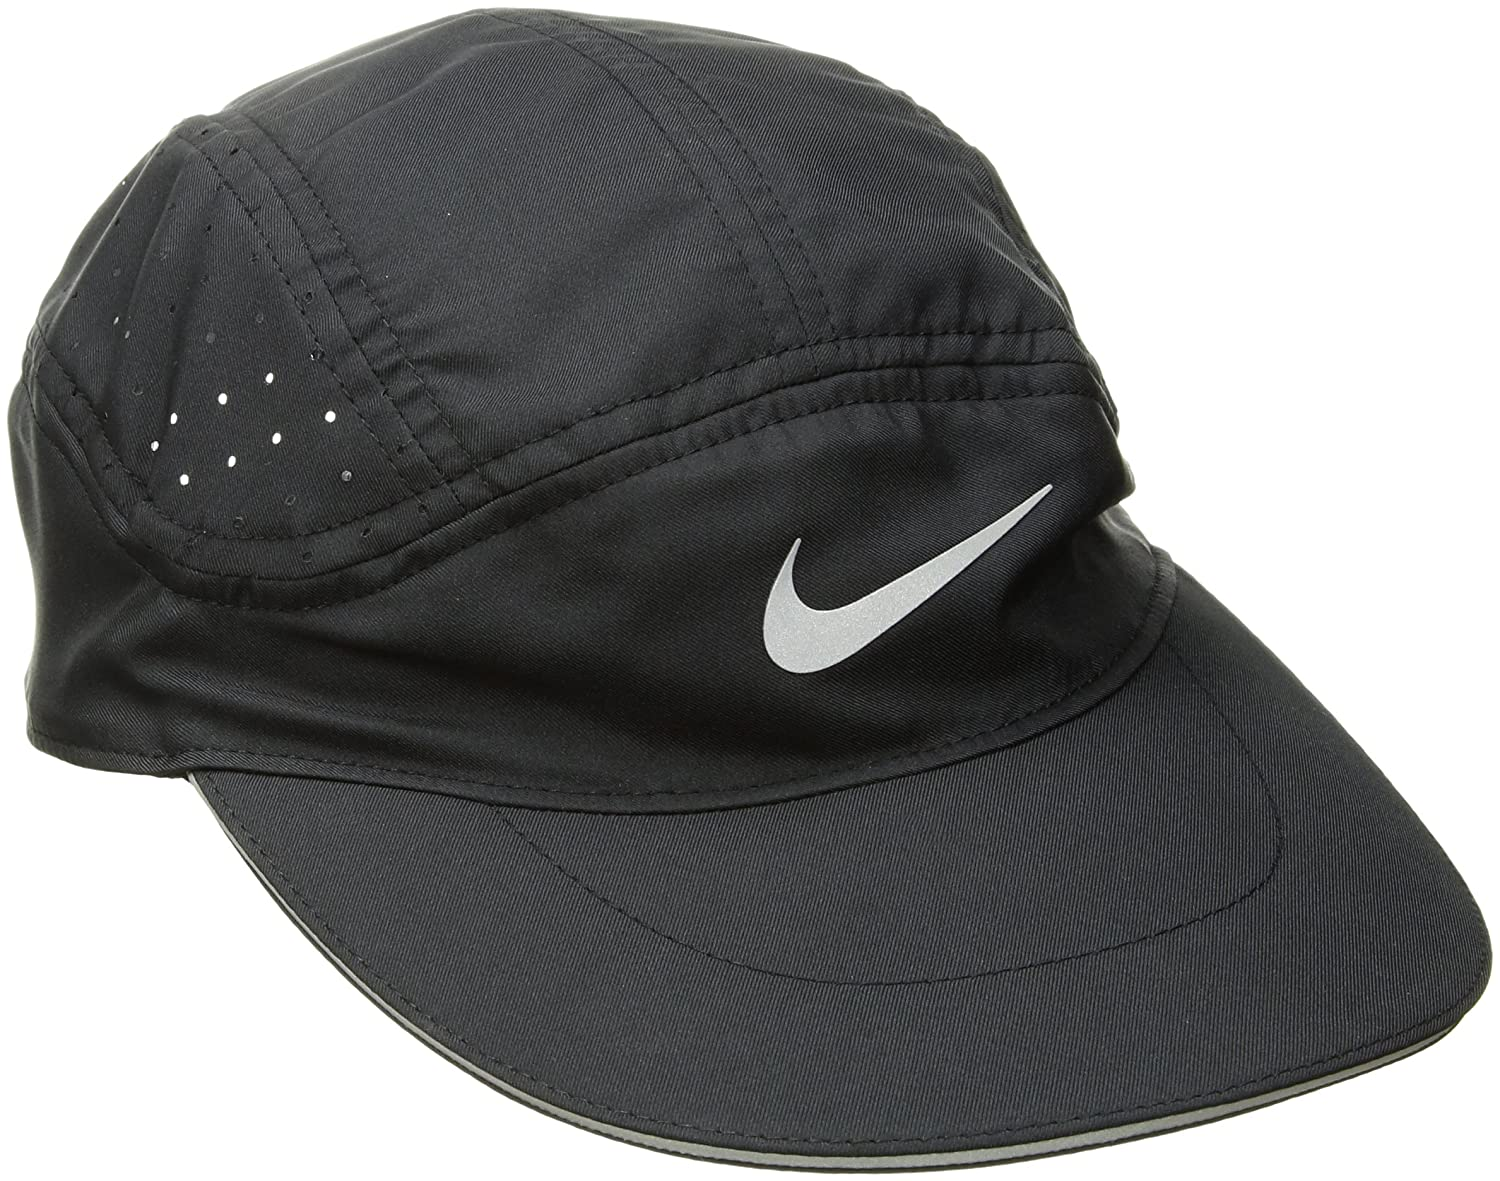 c21bdb61fae66 Amazon.com  Nike Mens Aerobill TW Elite Running Hat Black Black 828617-010   Sports   Outdoors